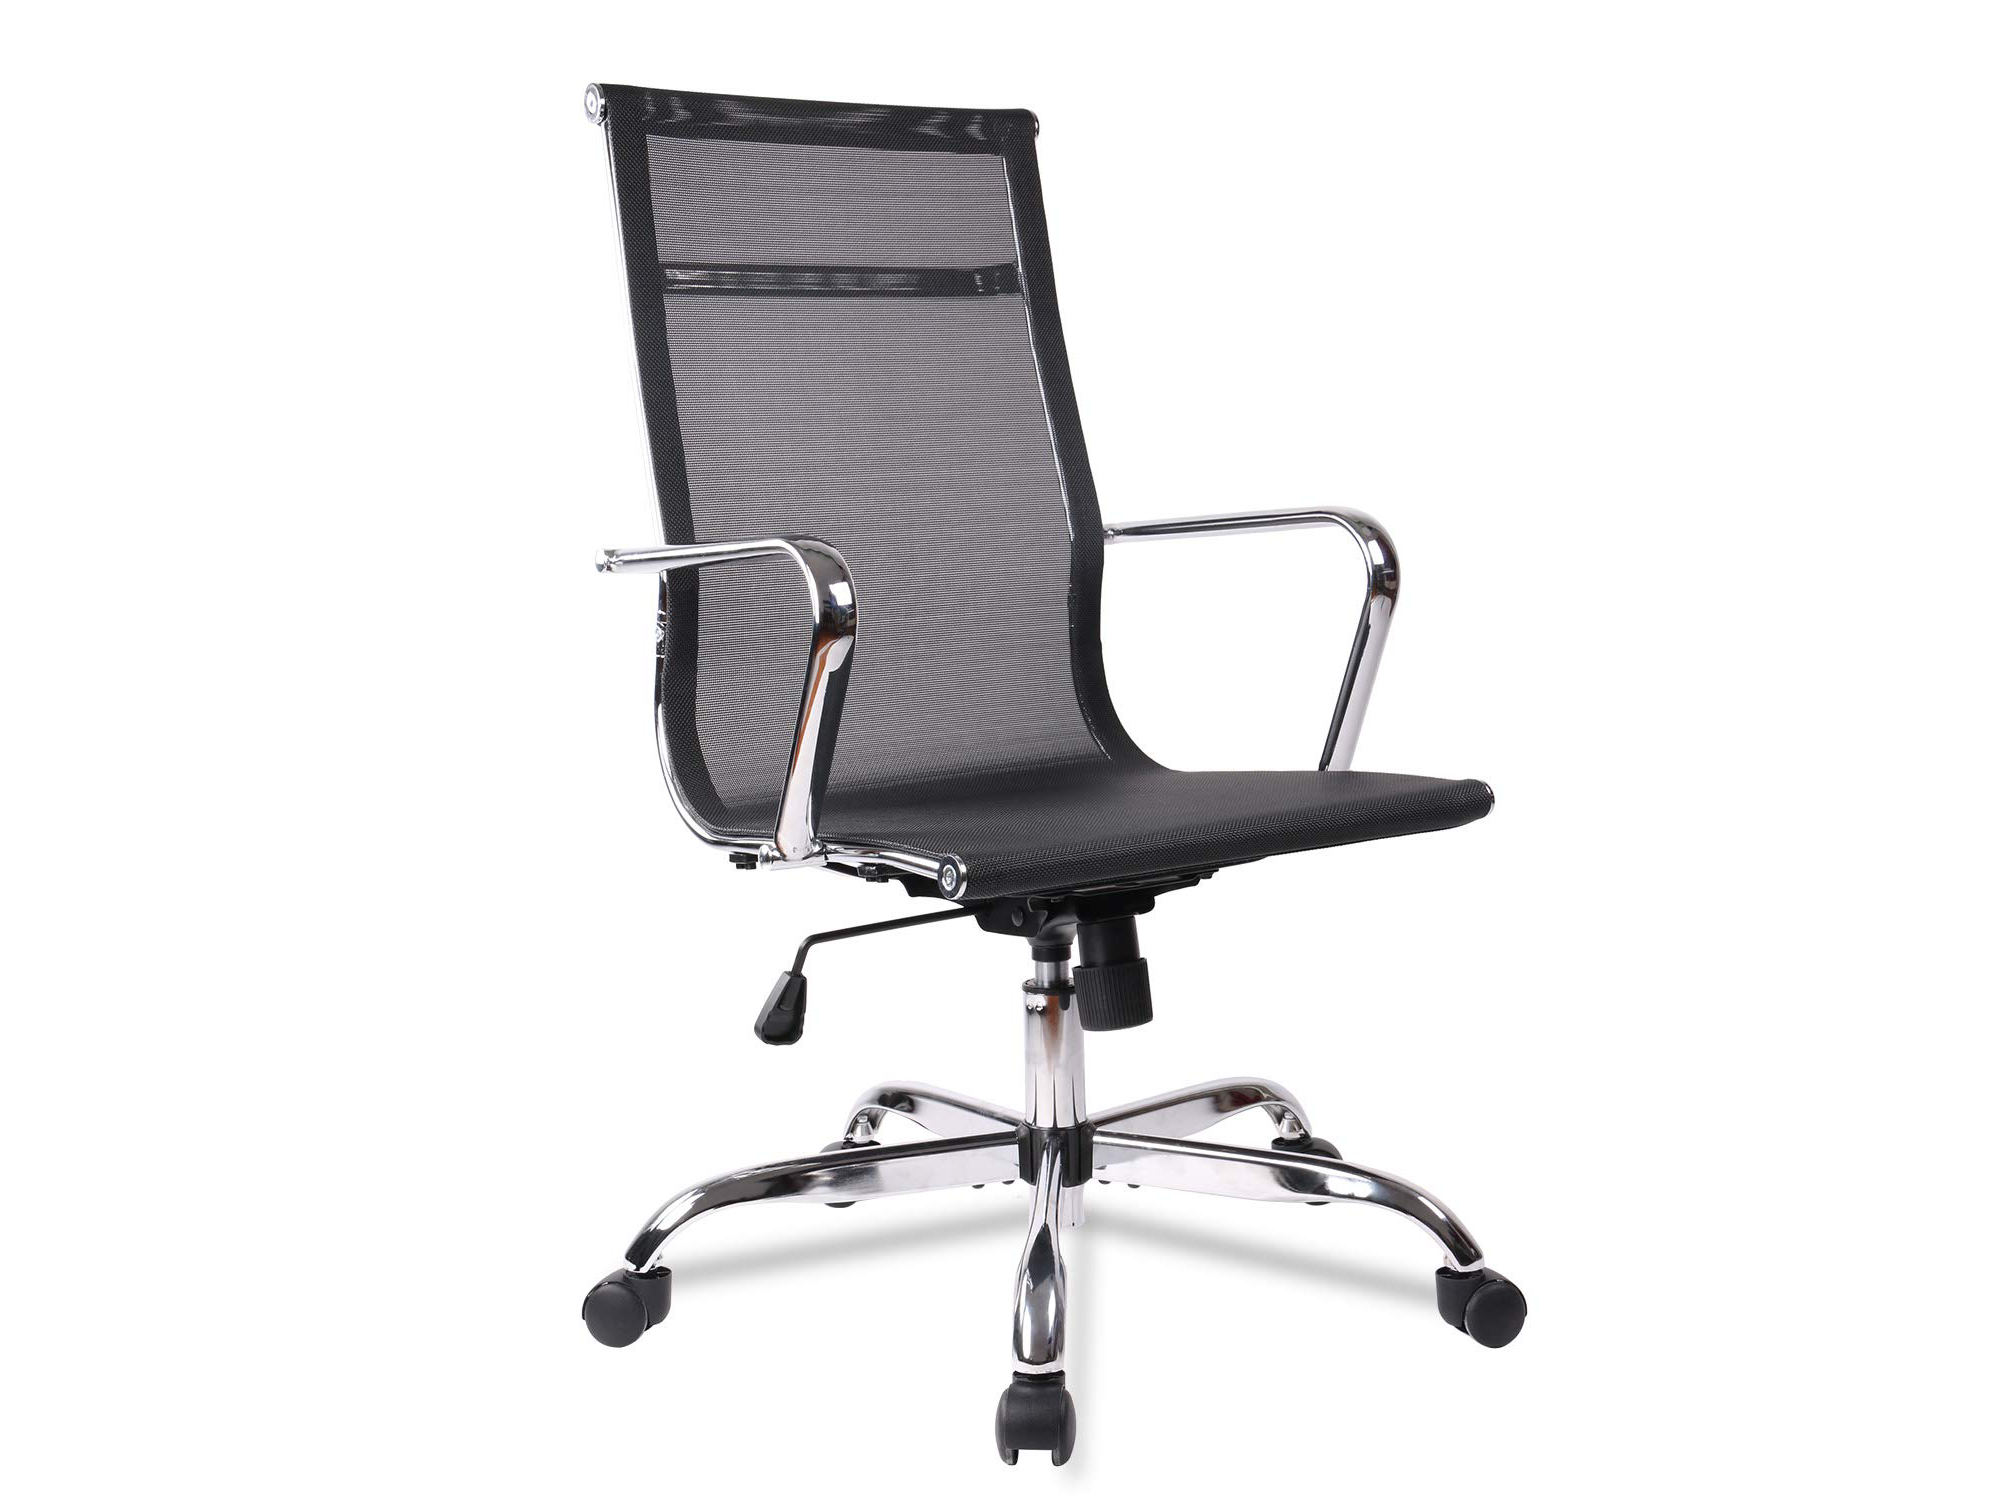 PERIMETER EXECUTIVE CHAIR